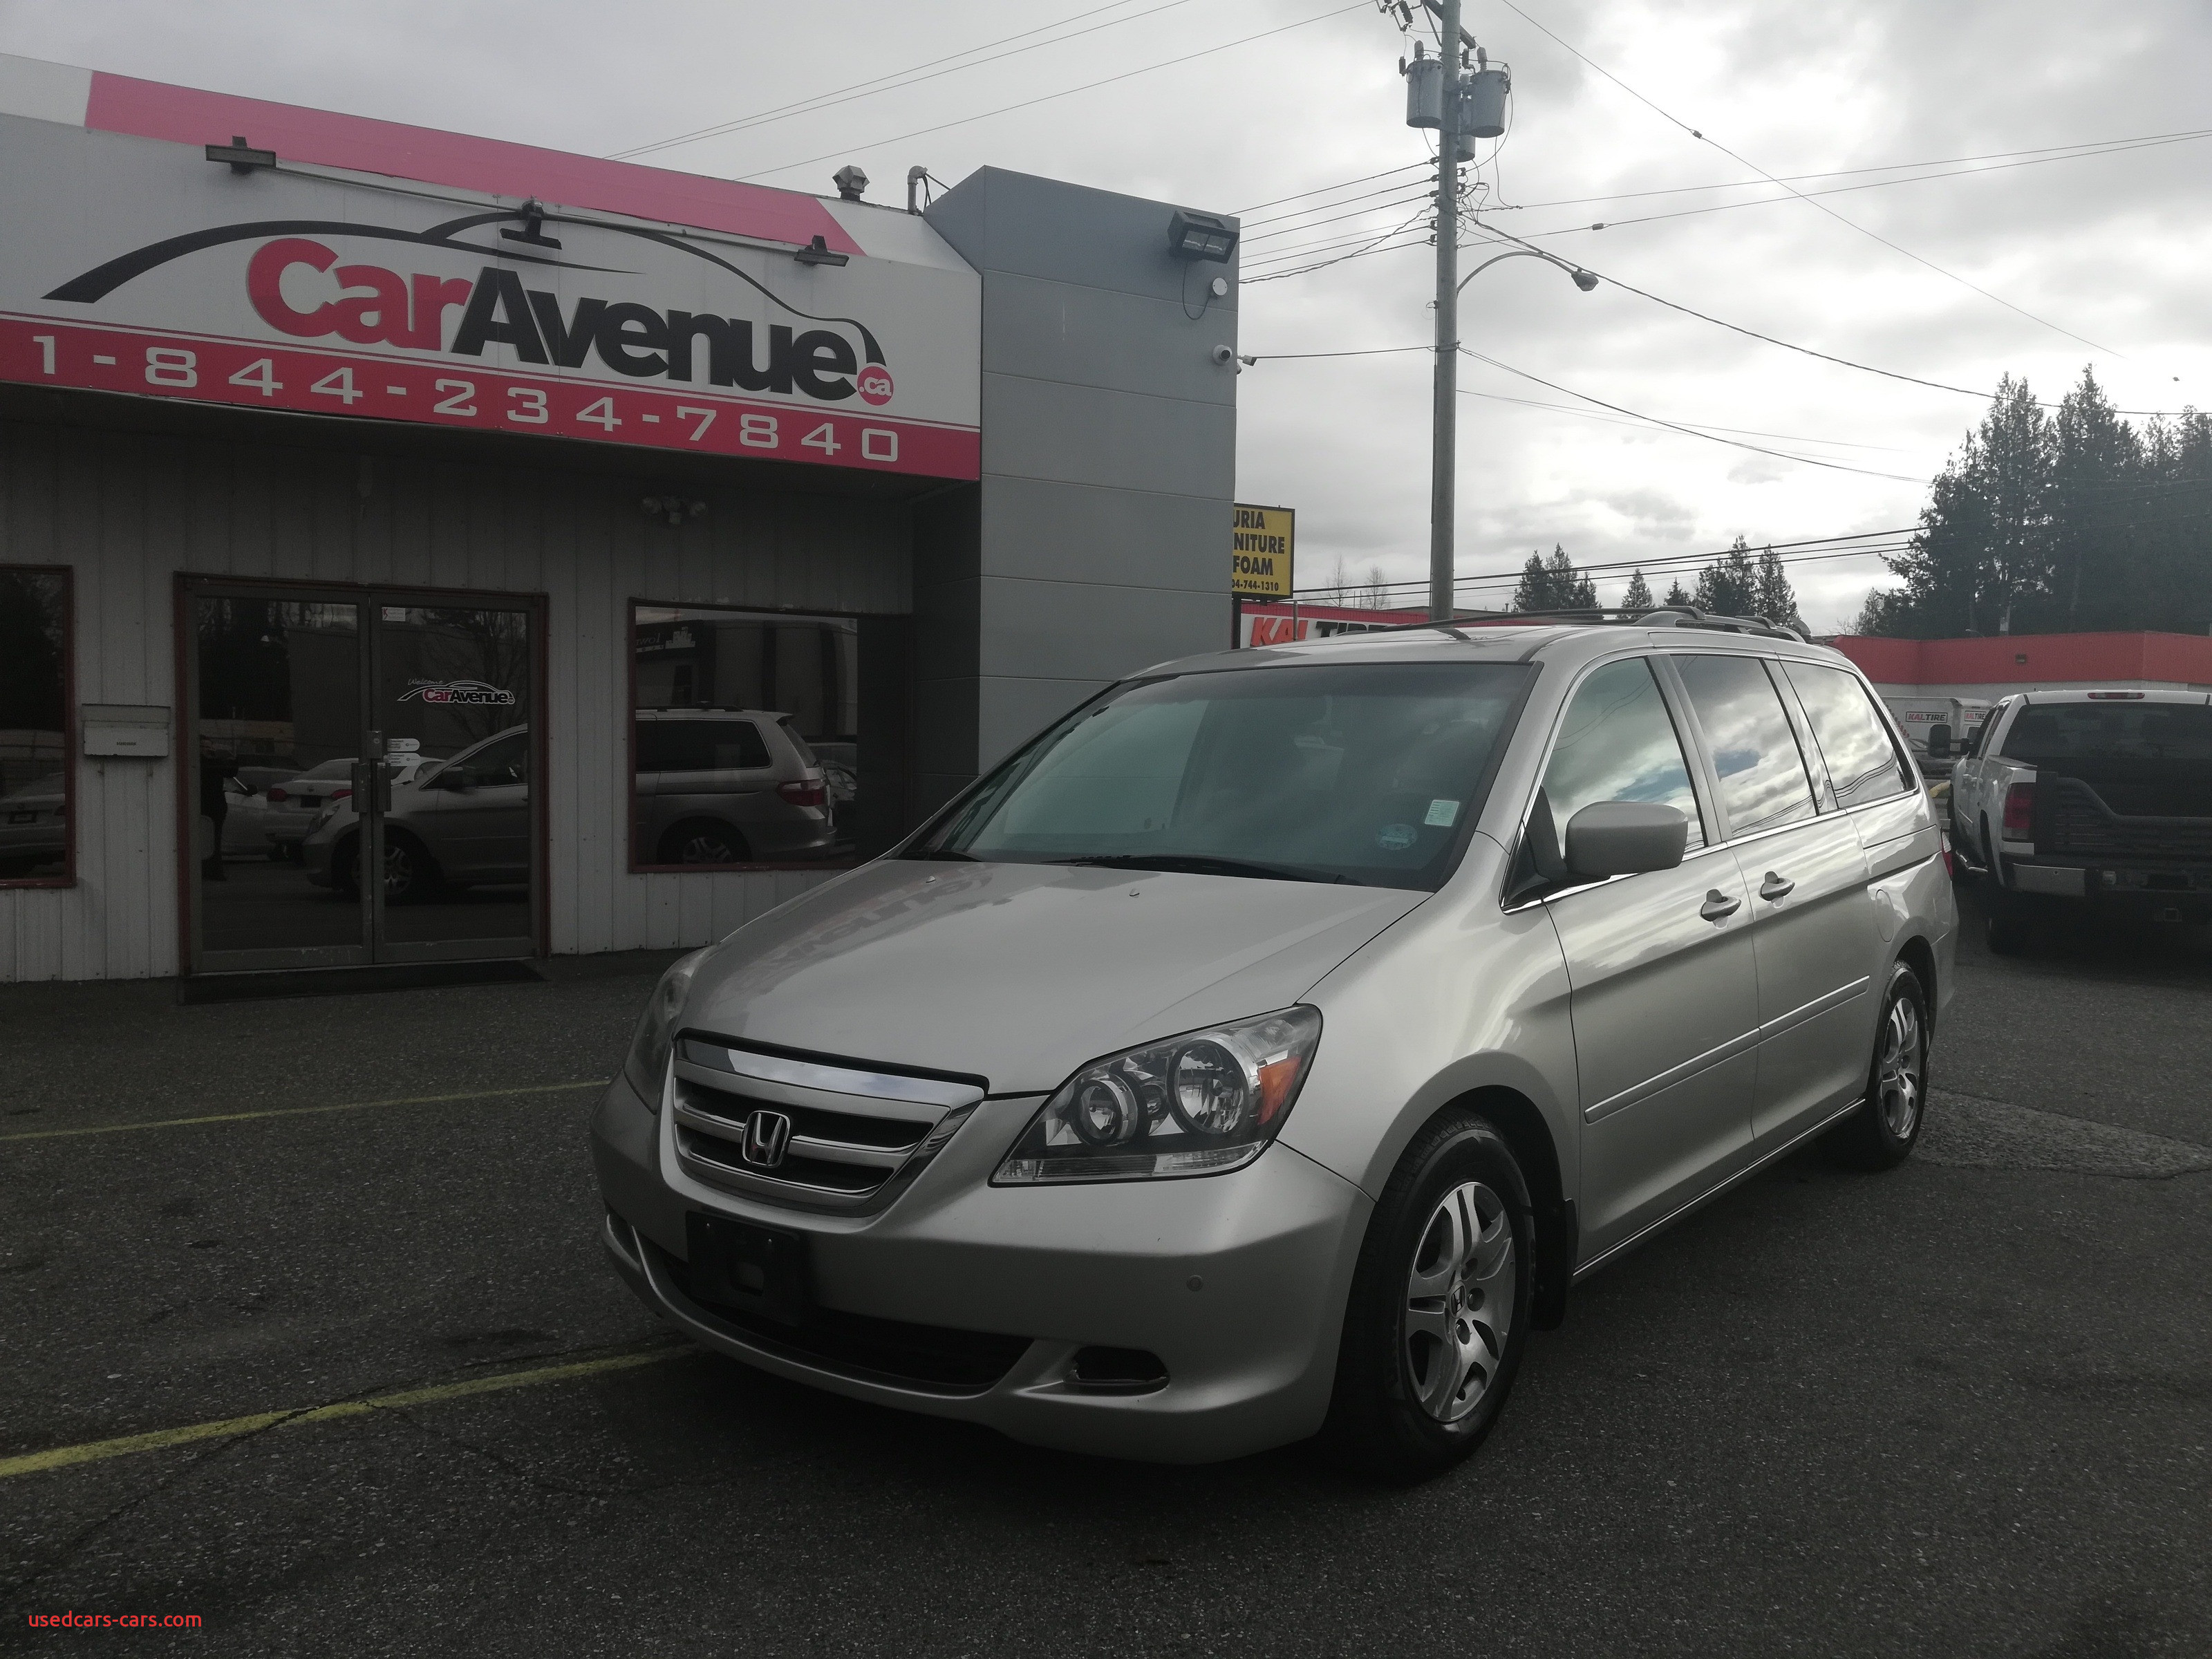 Used Cars Under $3000 Near Me Luxury 2006 Honda Odyssey touring Bc Only Navigation Dvd Sunroof